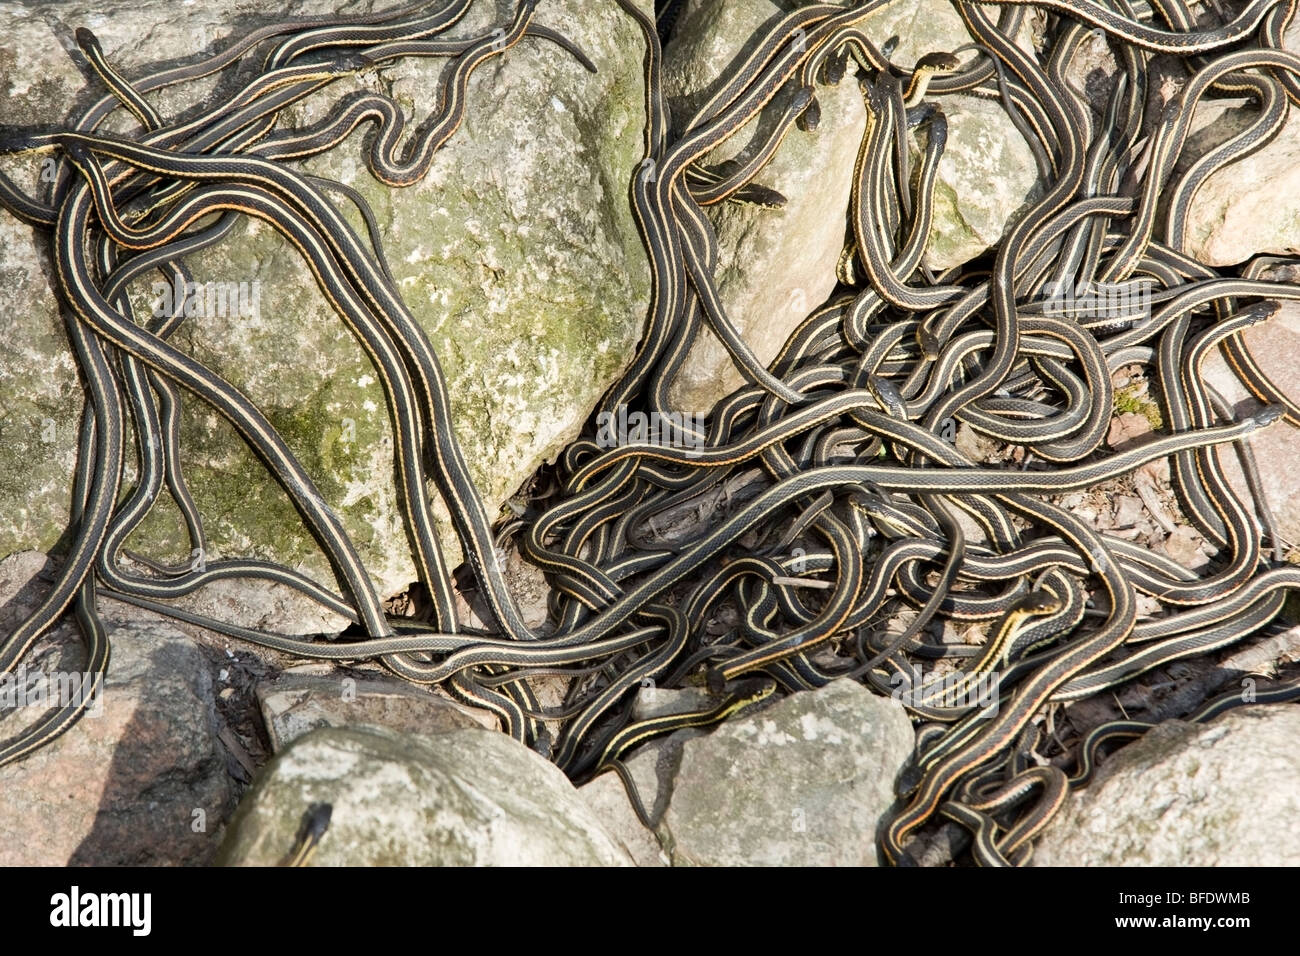 Large group of Red-sided garter snake (Thamnophis)  at Narcisse Snake Dens in Winnipeg, Manitoba, Canada - Stock Image